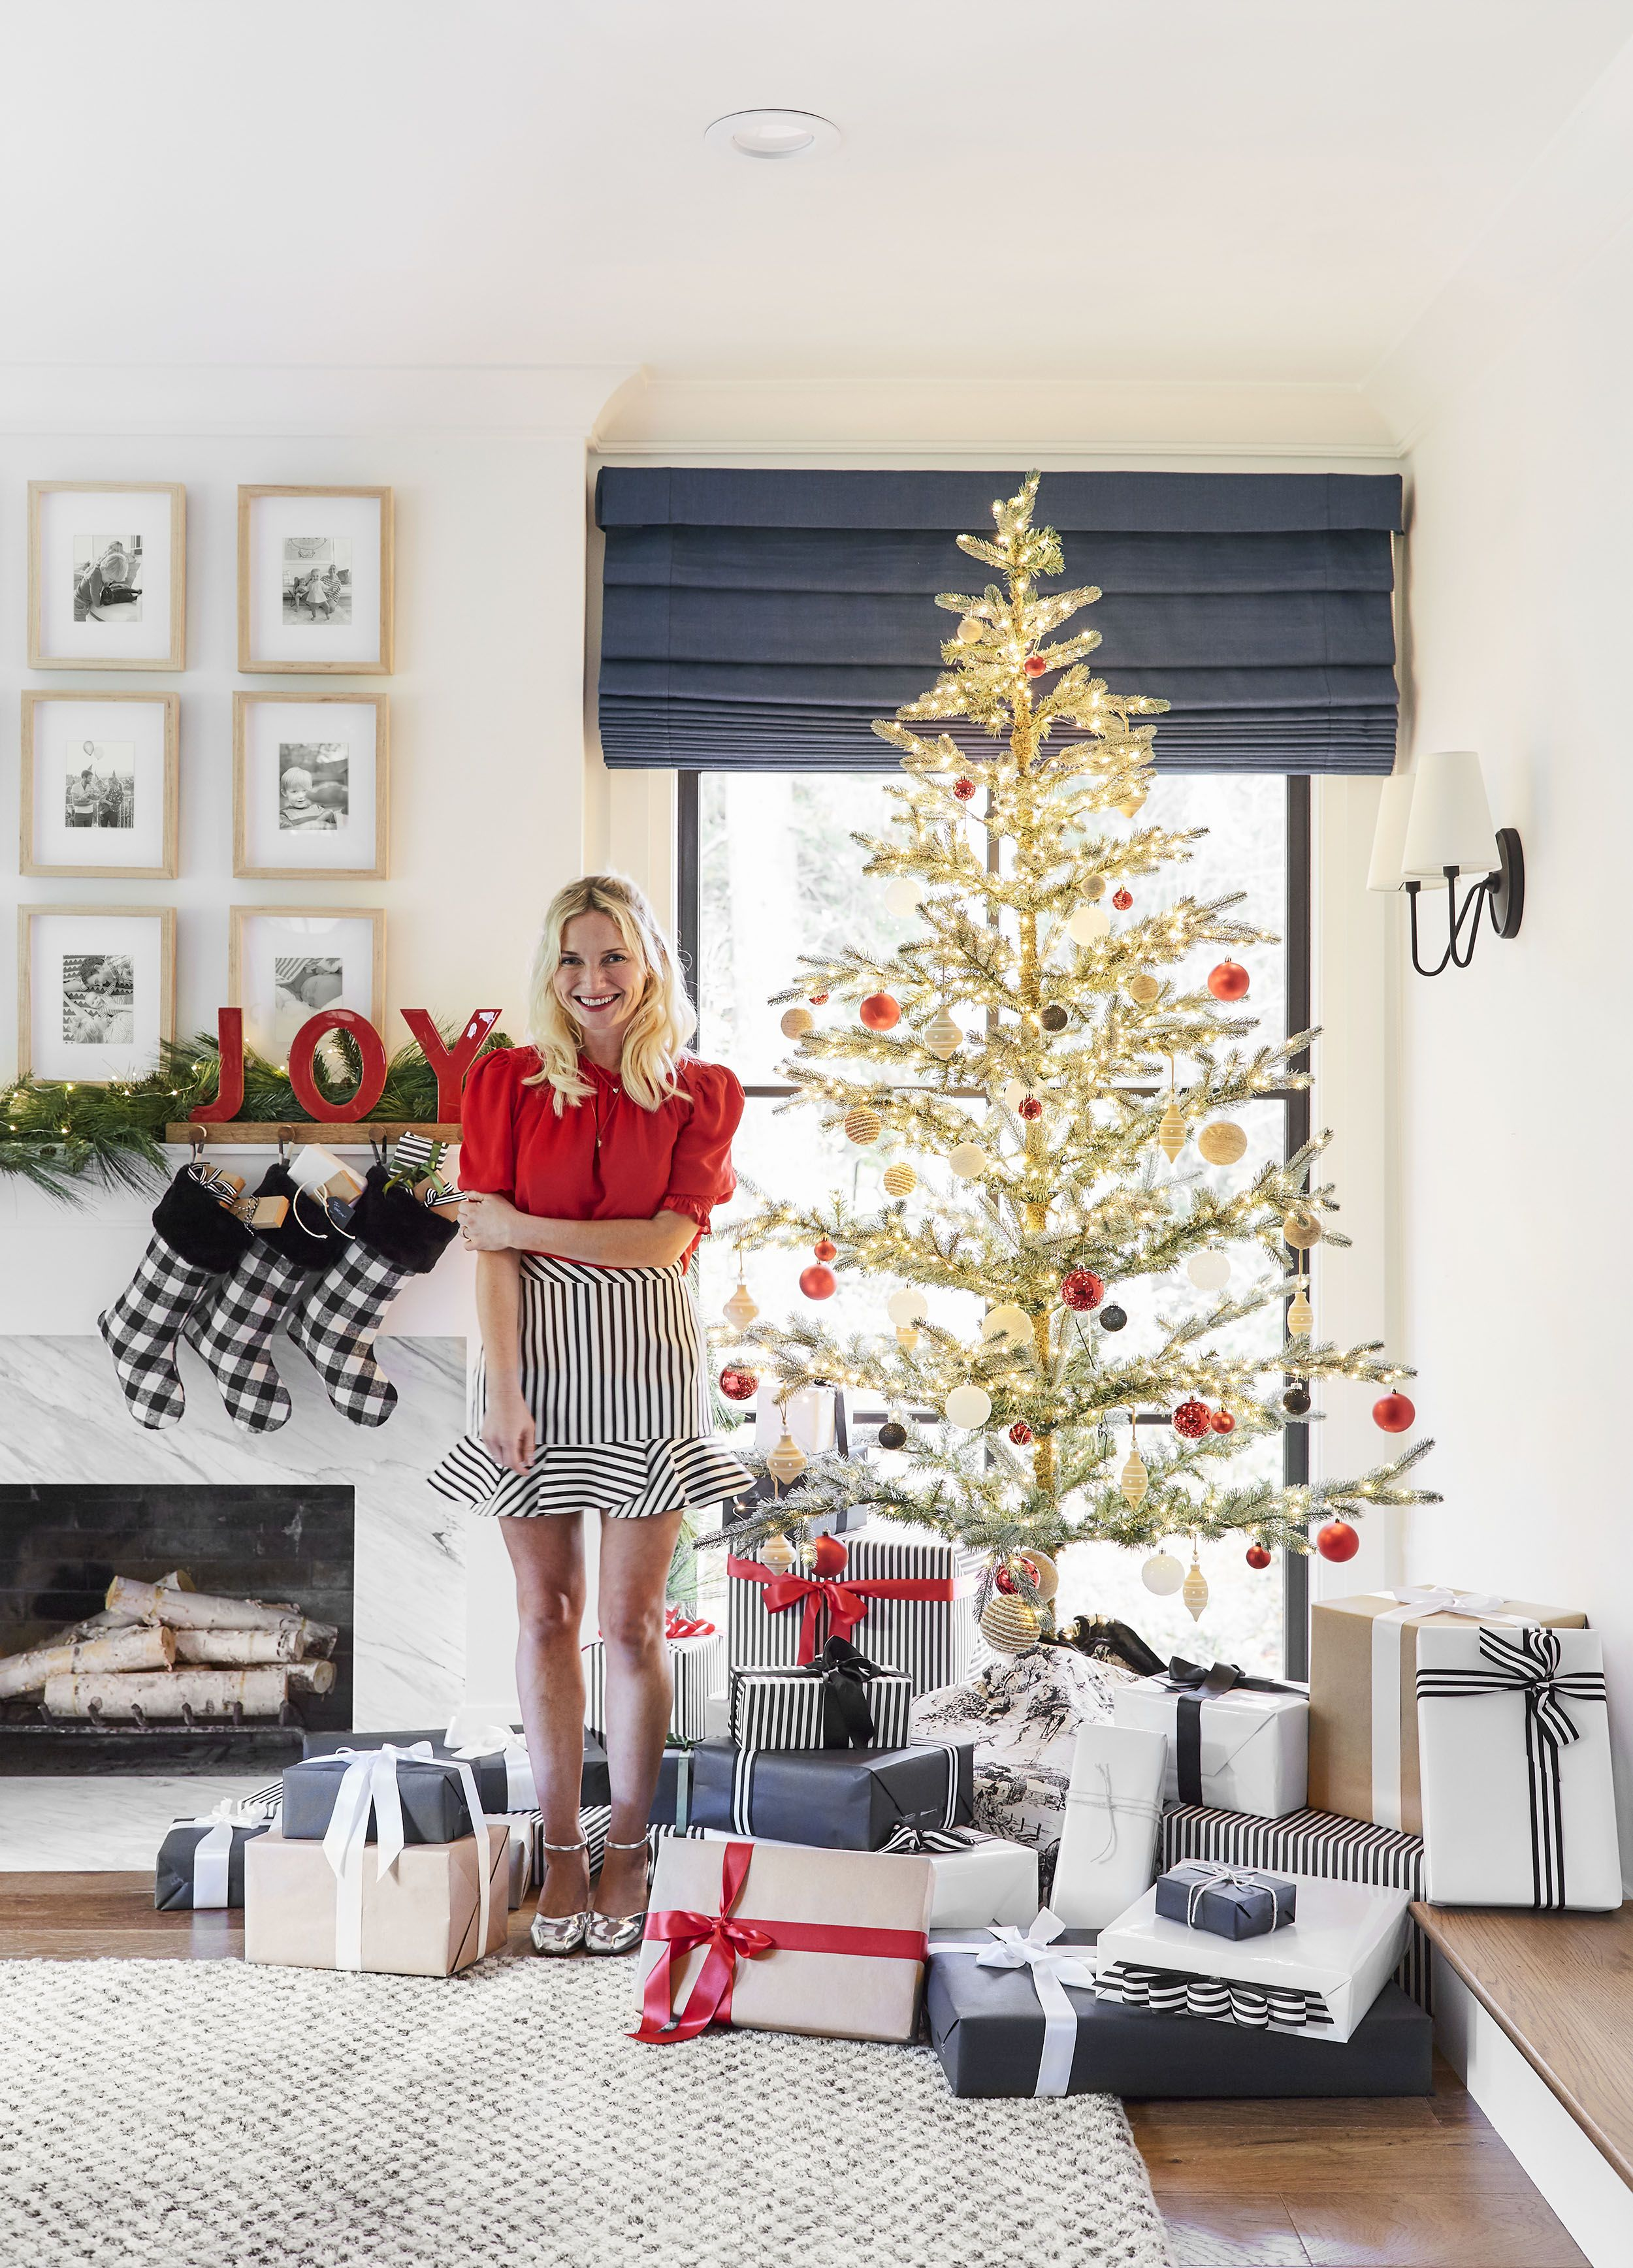 Christmas Decorating Ideas How To Create A Refined Traditional Look With Target Classic Christmas Decorations Holiday Tabletop Decor Holiday Decor